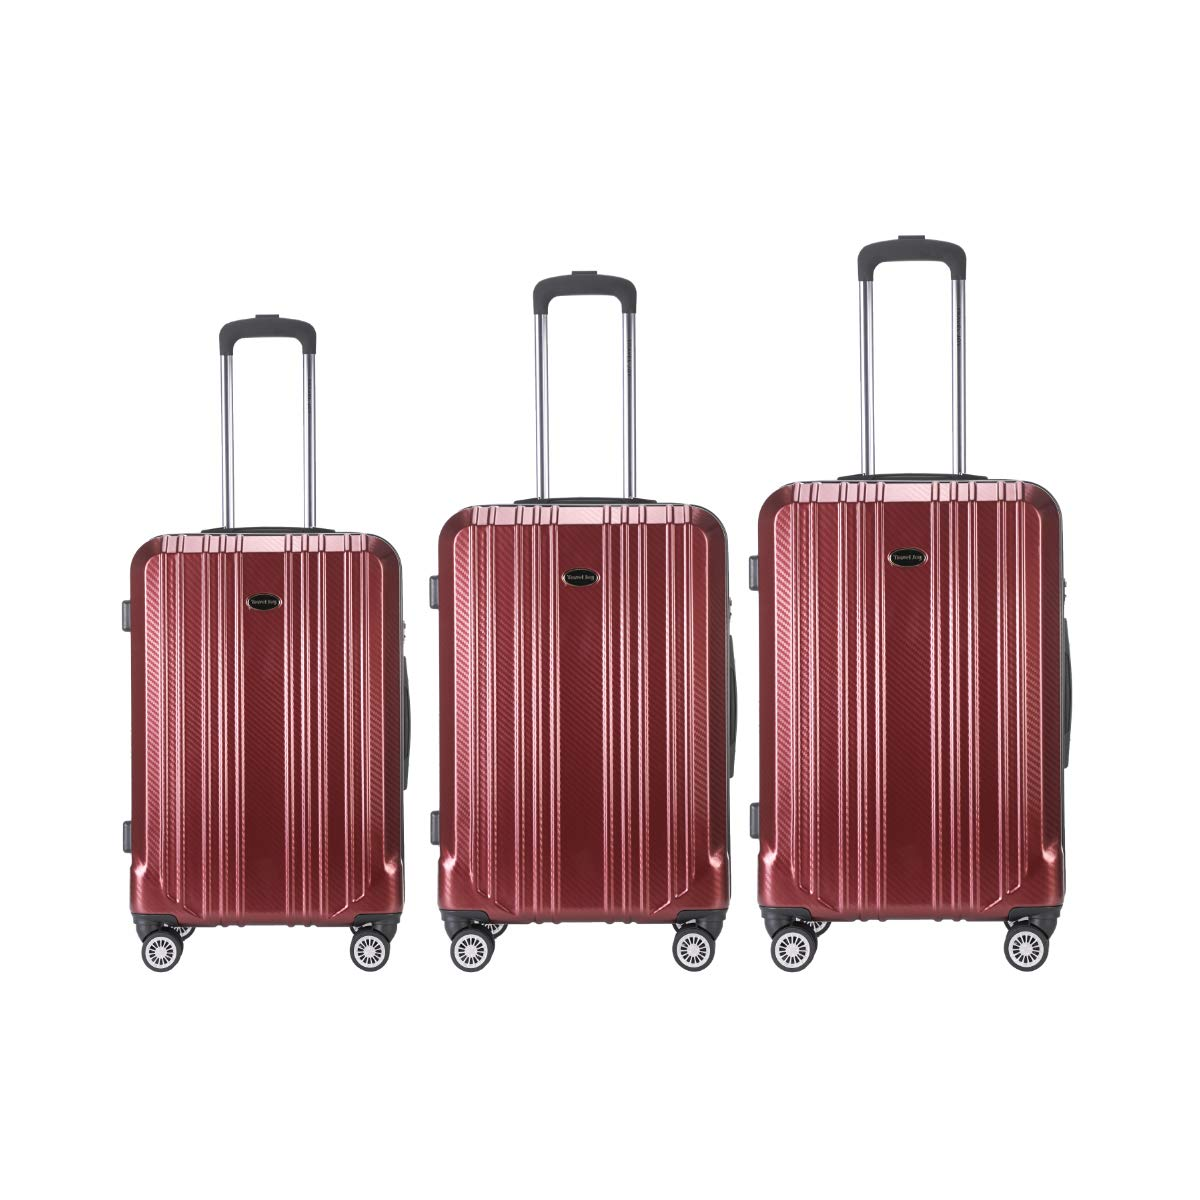 Lightweight Suitcases, Expandable Luggage Set, Double Wheels Spinner Luggage, 3 pcs set(20''24''28'') (Burgundy) by TECOEASE